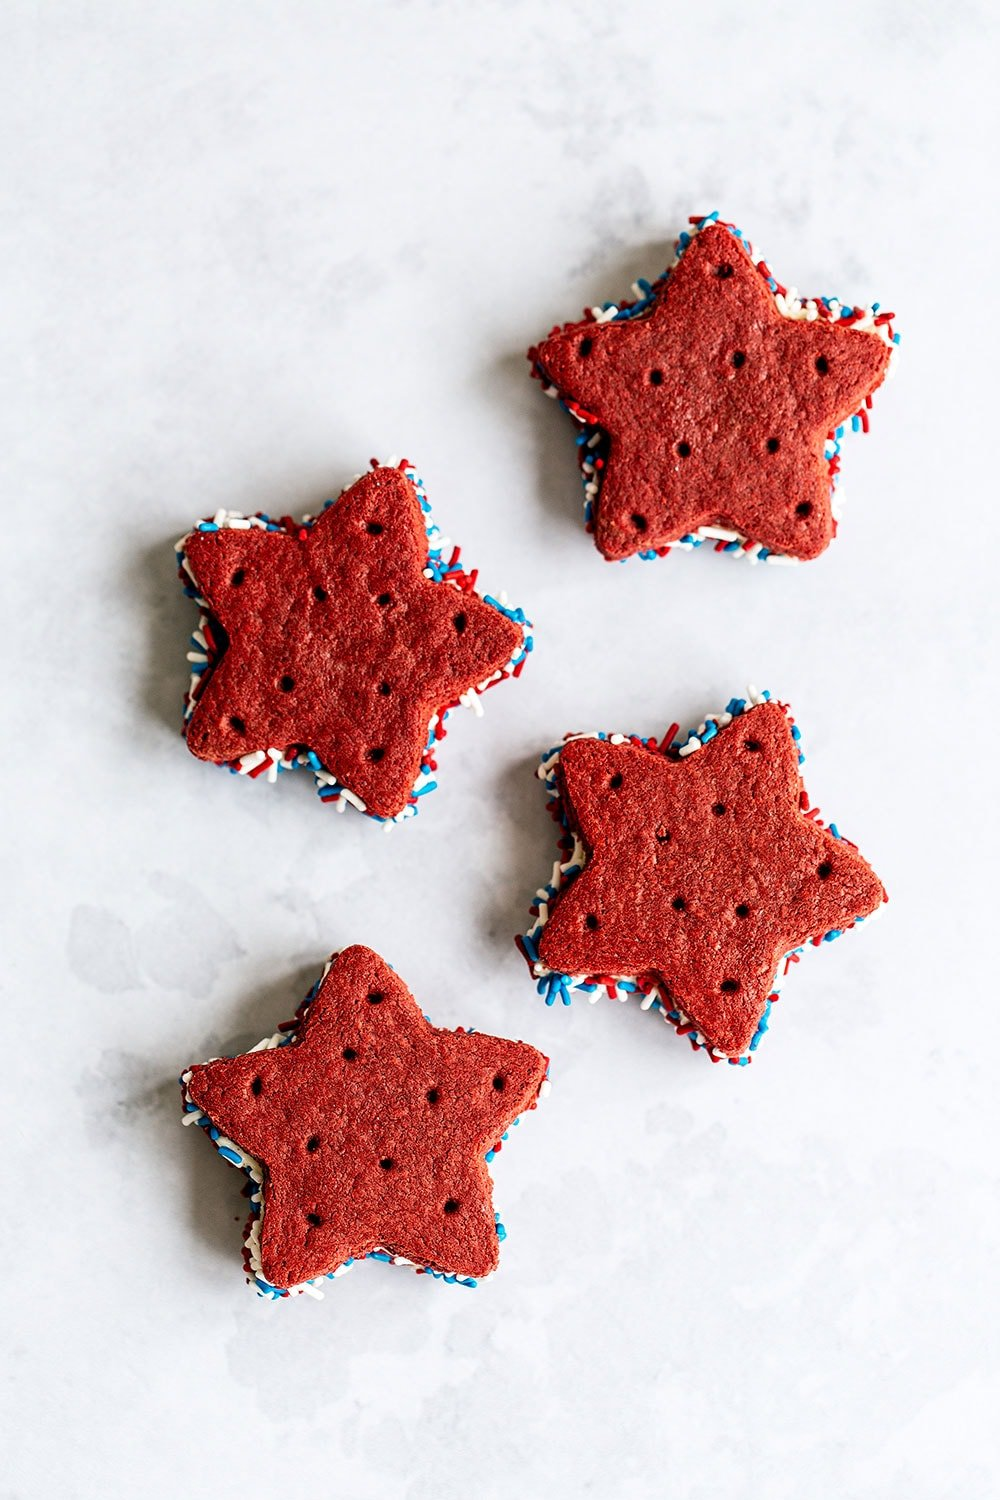 Easy red velvet ice cream sandwiches with homemade cookies on a marble surface